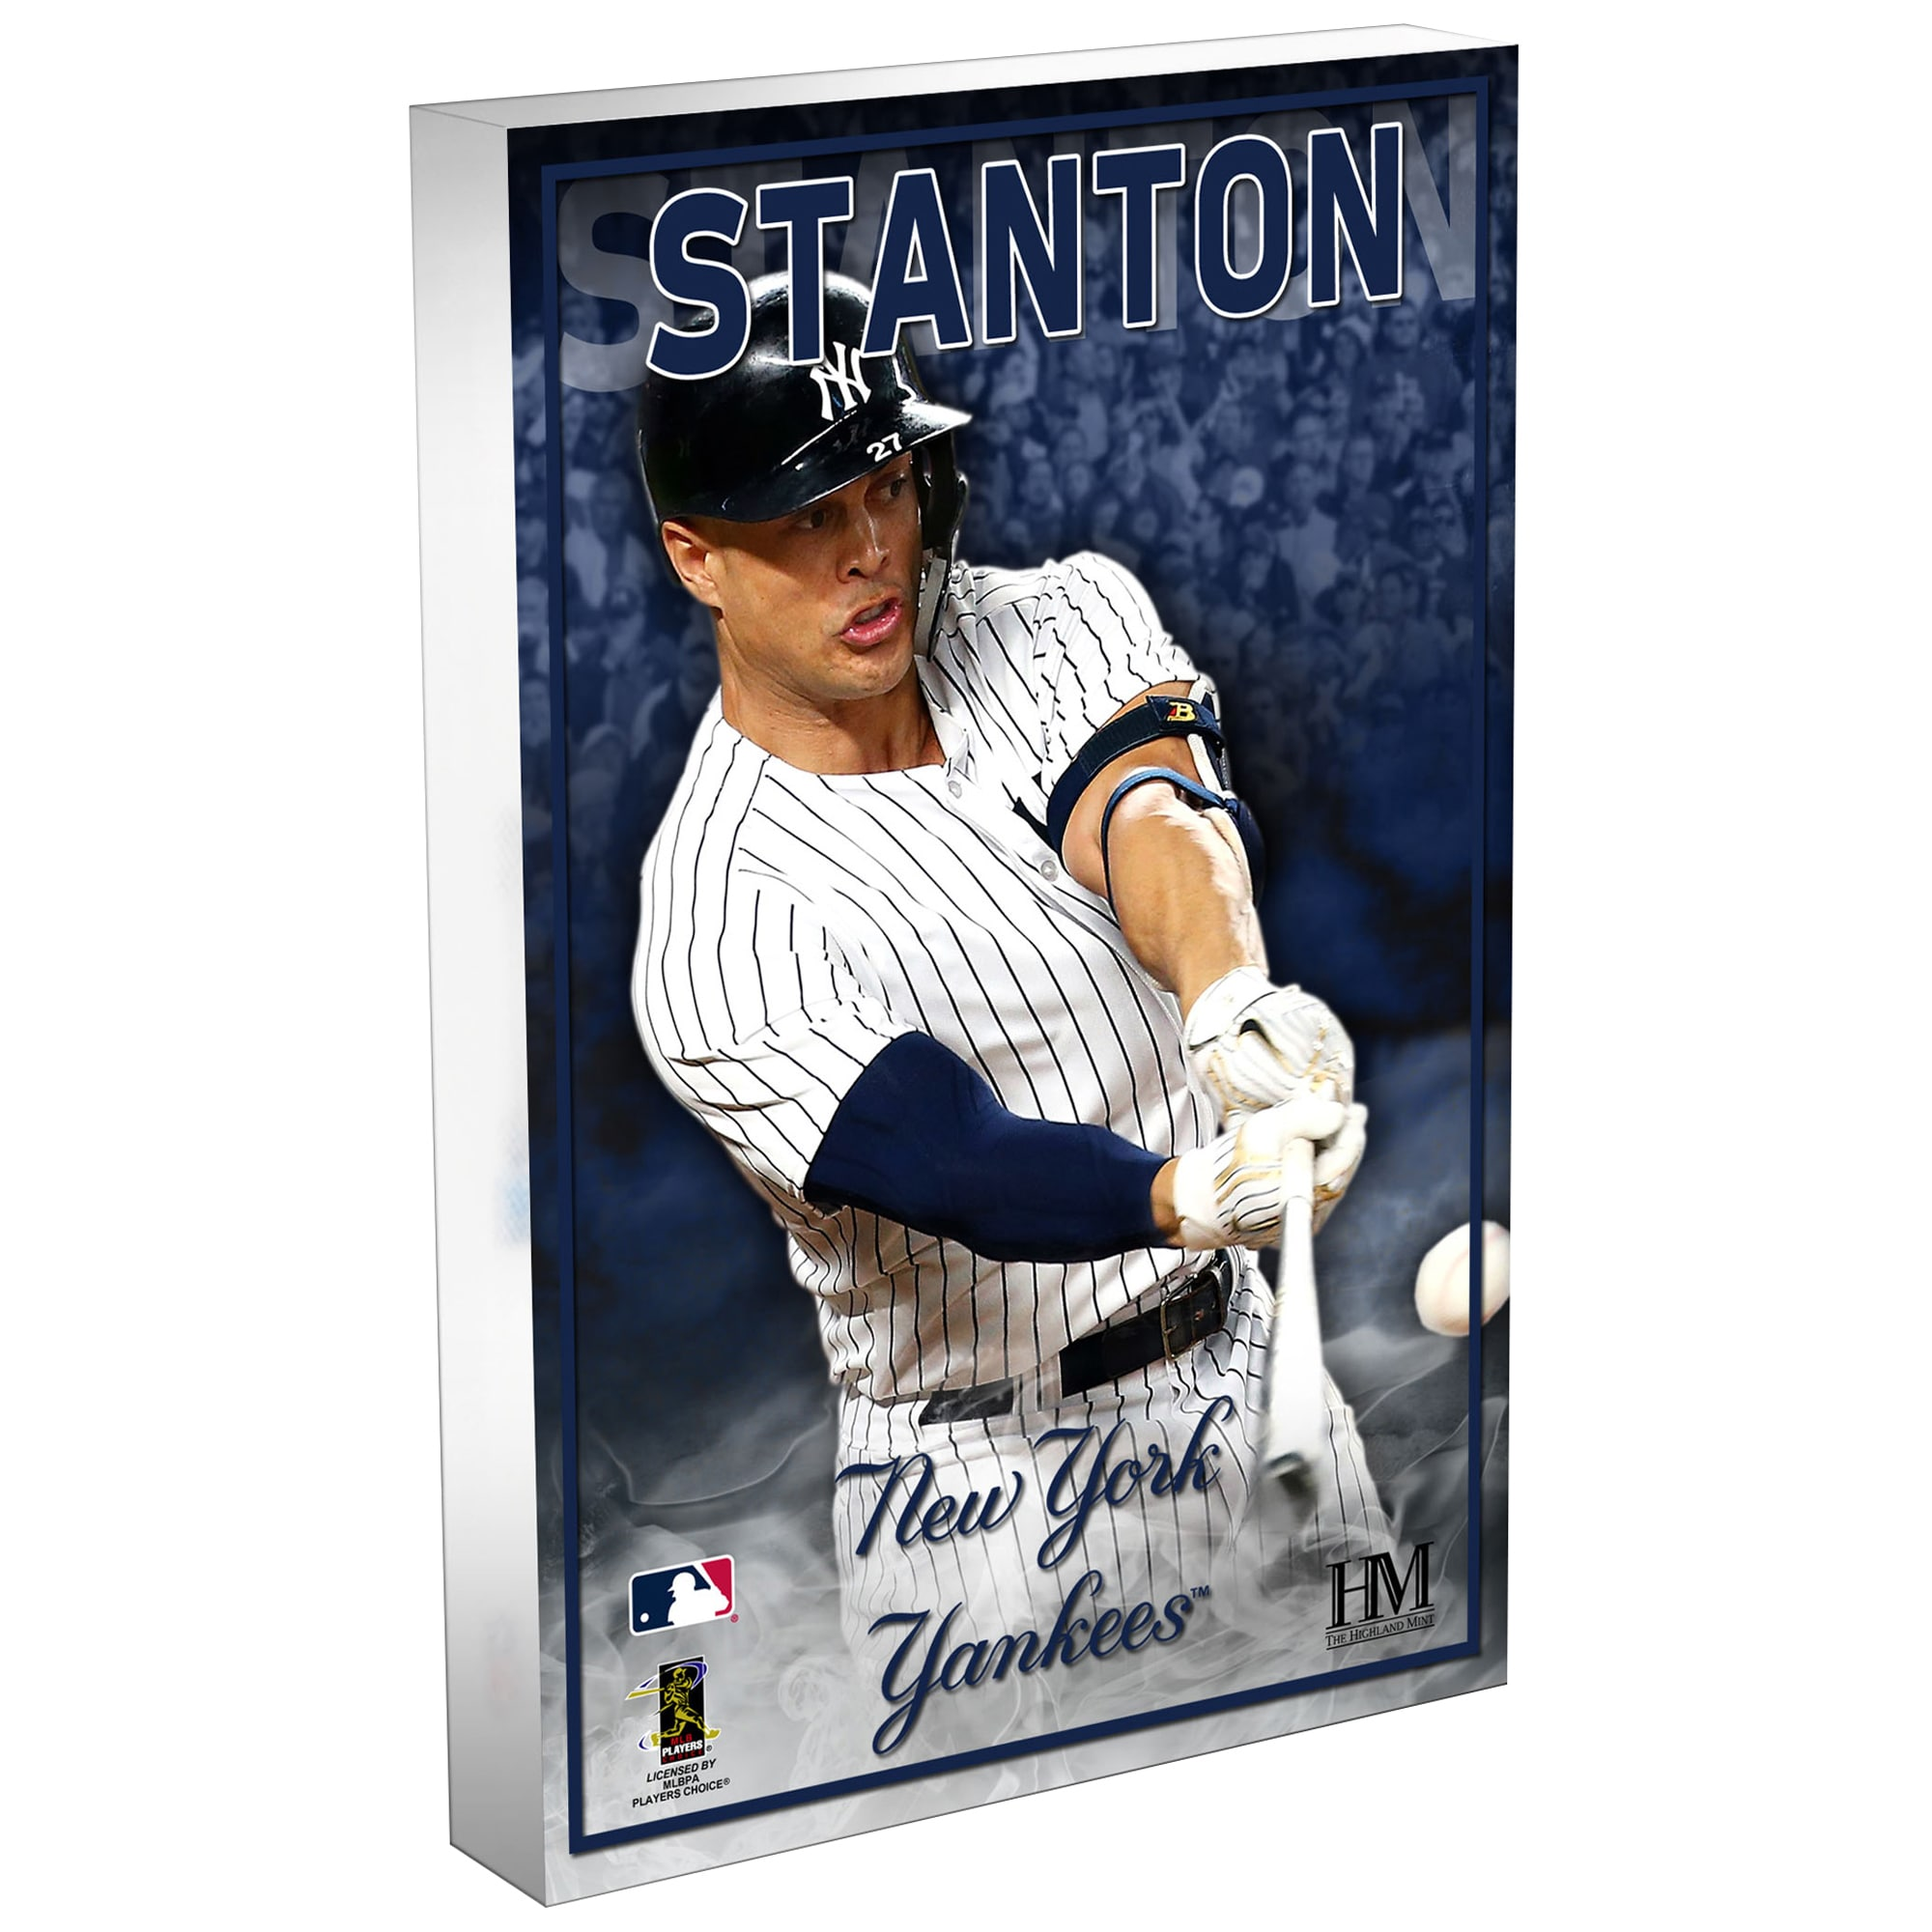 Giancarlo Stanton New York Yankees Highland Mint 3D Acrylic Blockart